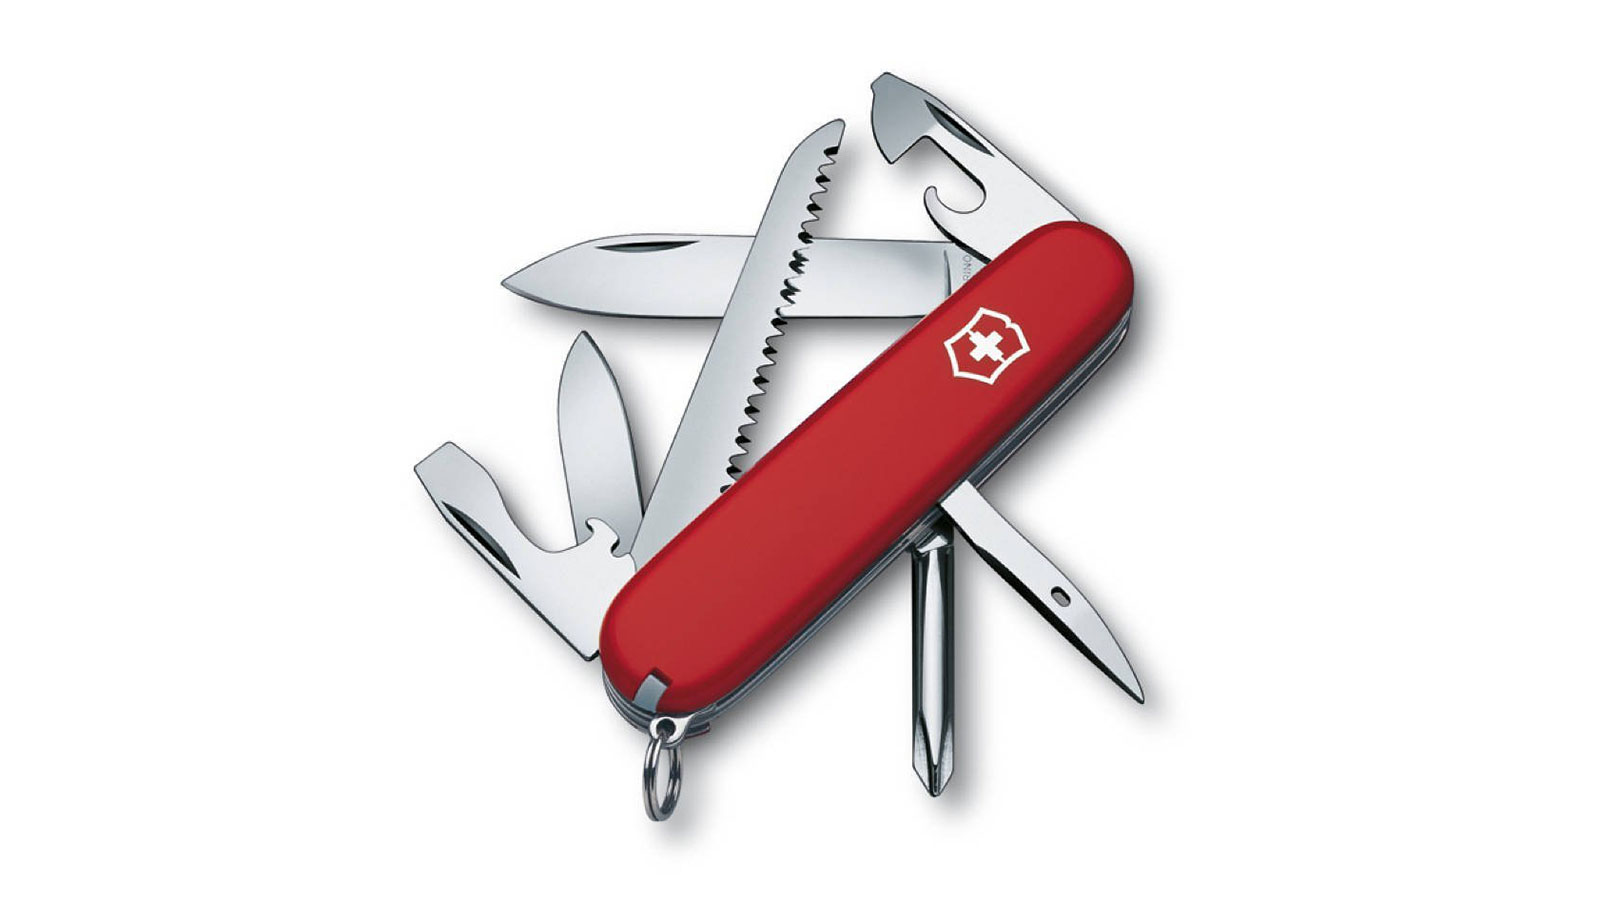 Victorinox Hiker Swiss Army Knife | the best swiss army knives